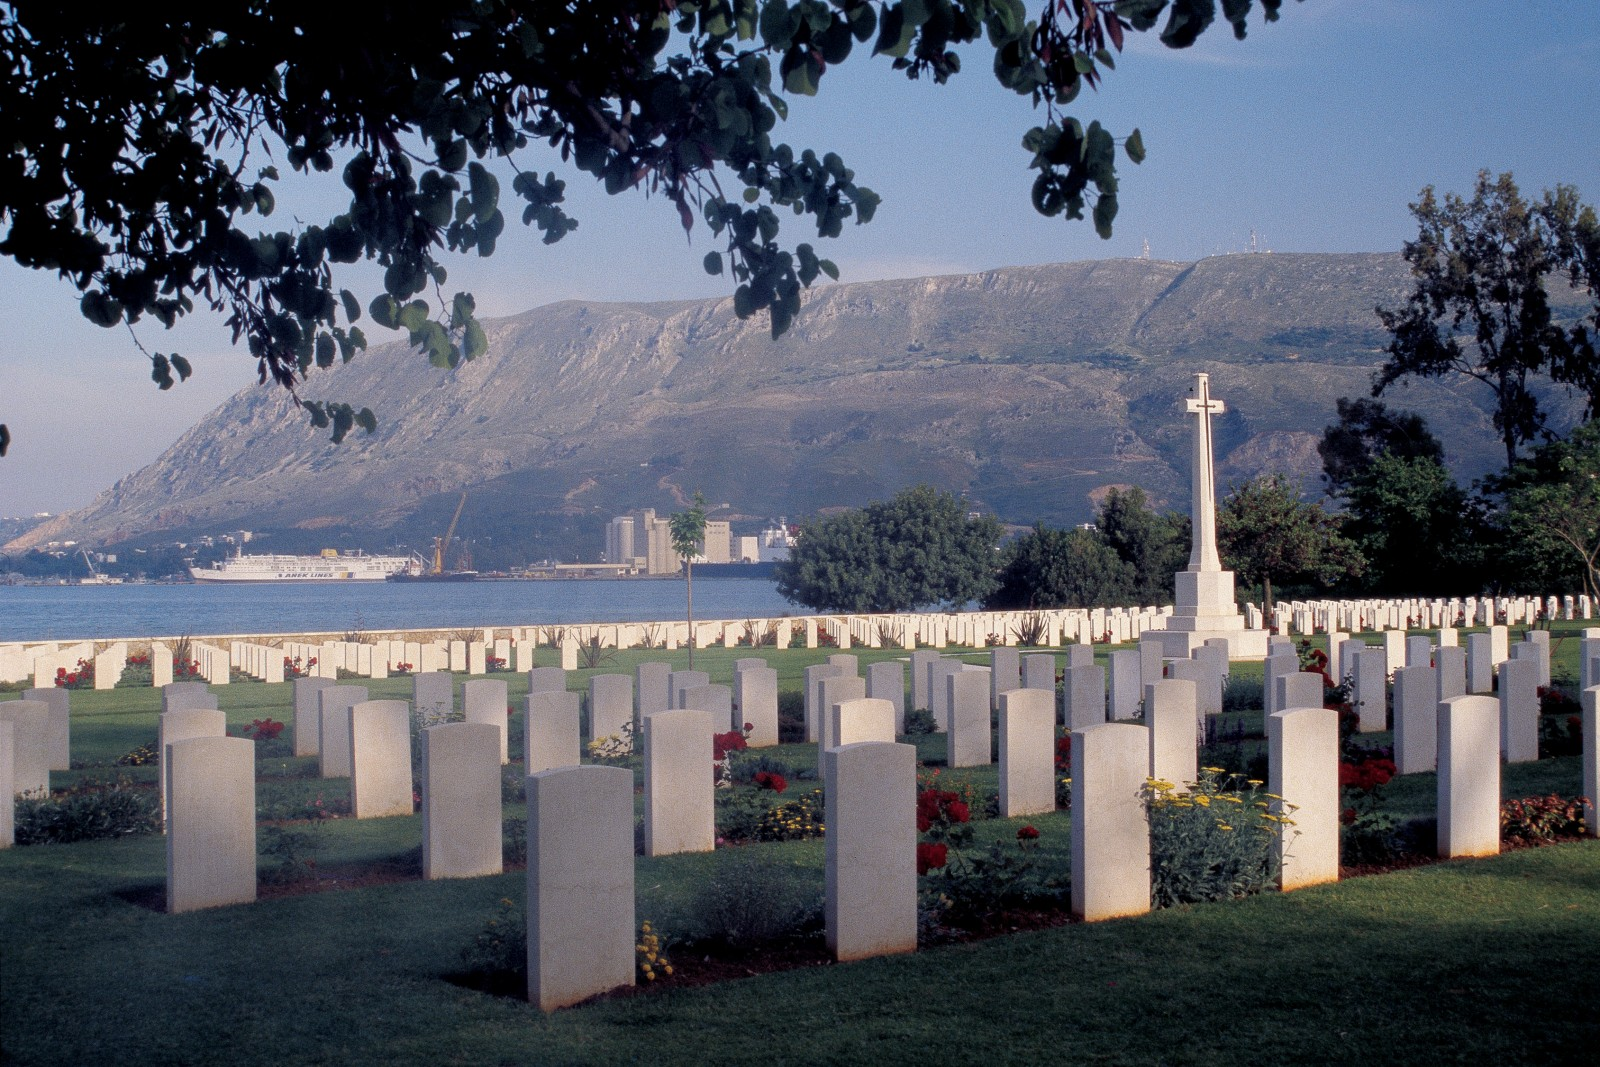 Many New Zealanders who died on Crete are remembered at the Commonwealth war cemetery overlooking Souda Bay, where their travails on the island began.